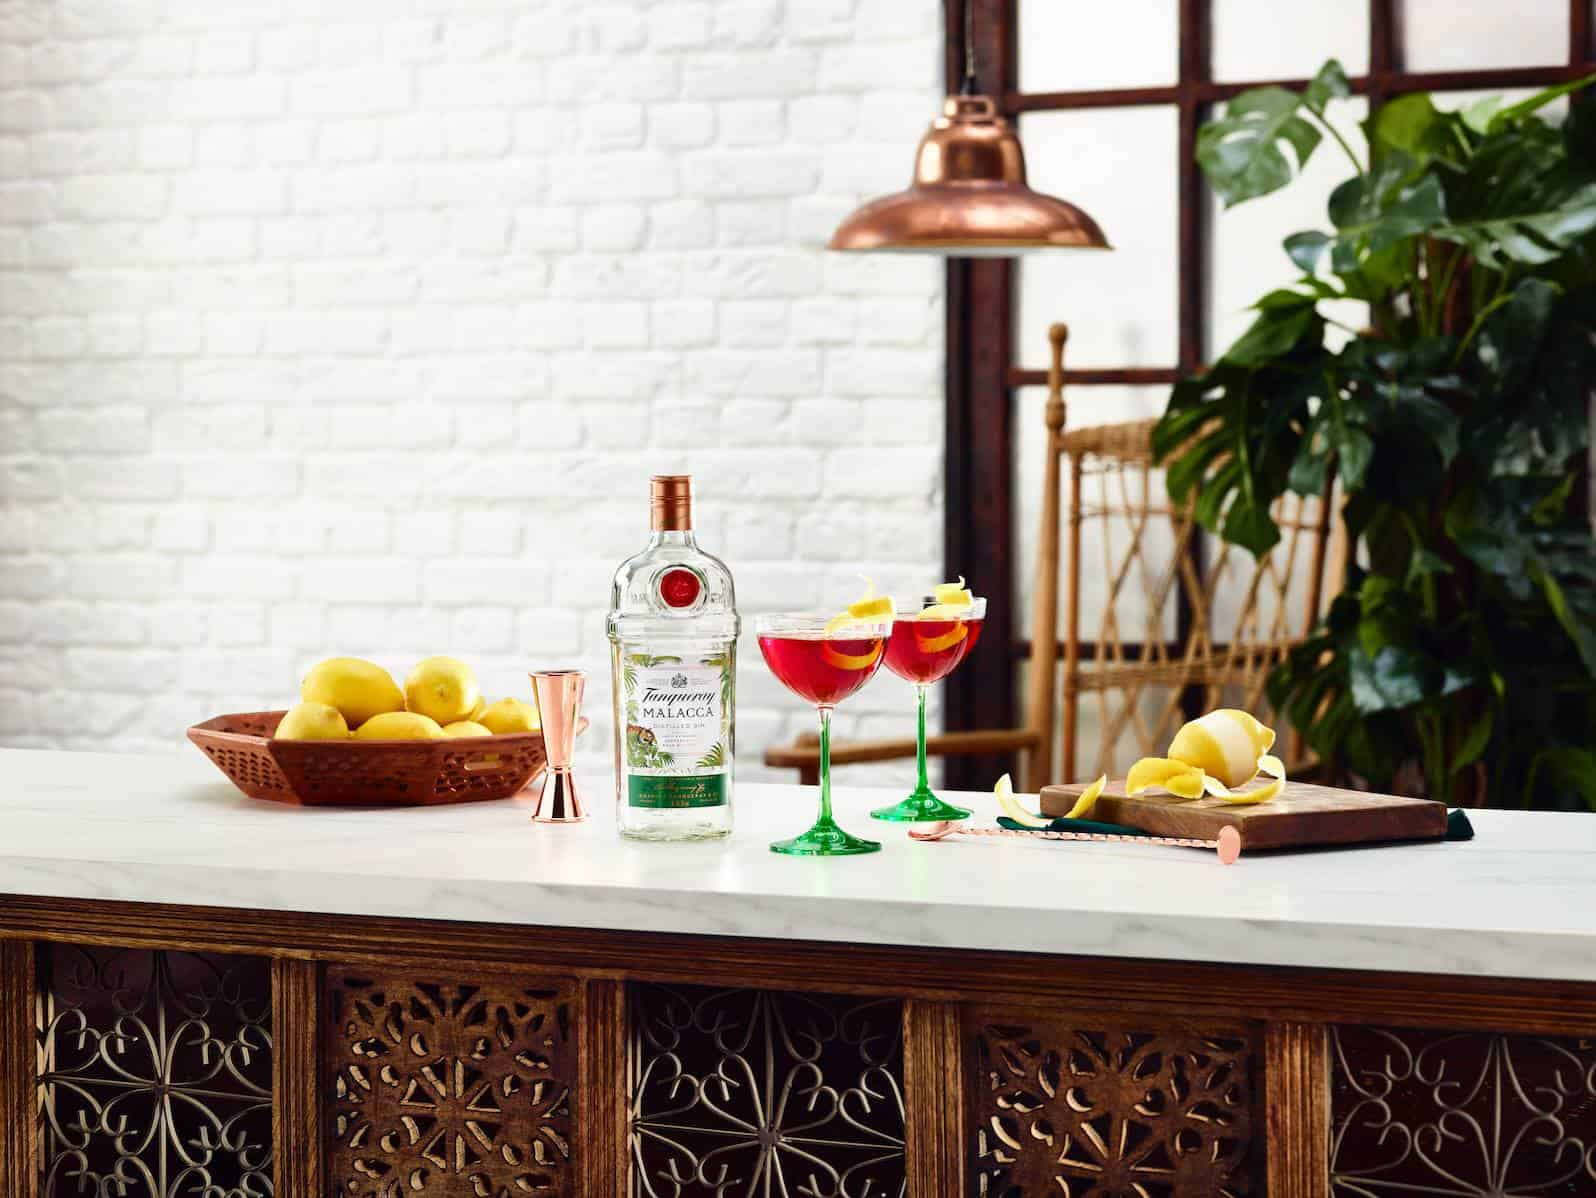 The 25 Best Gin Brands In The World